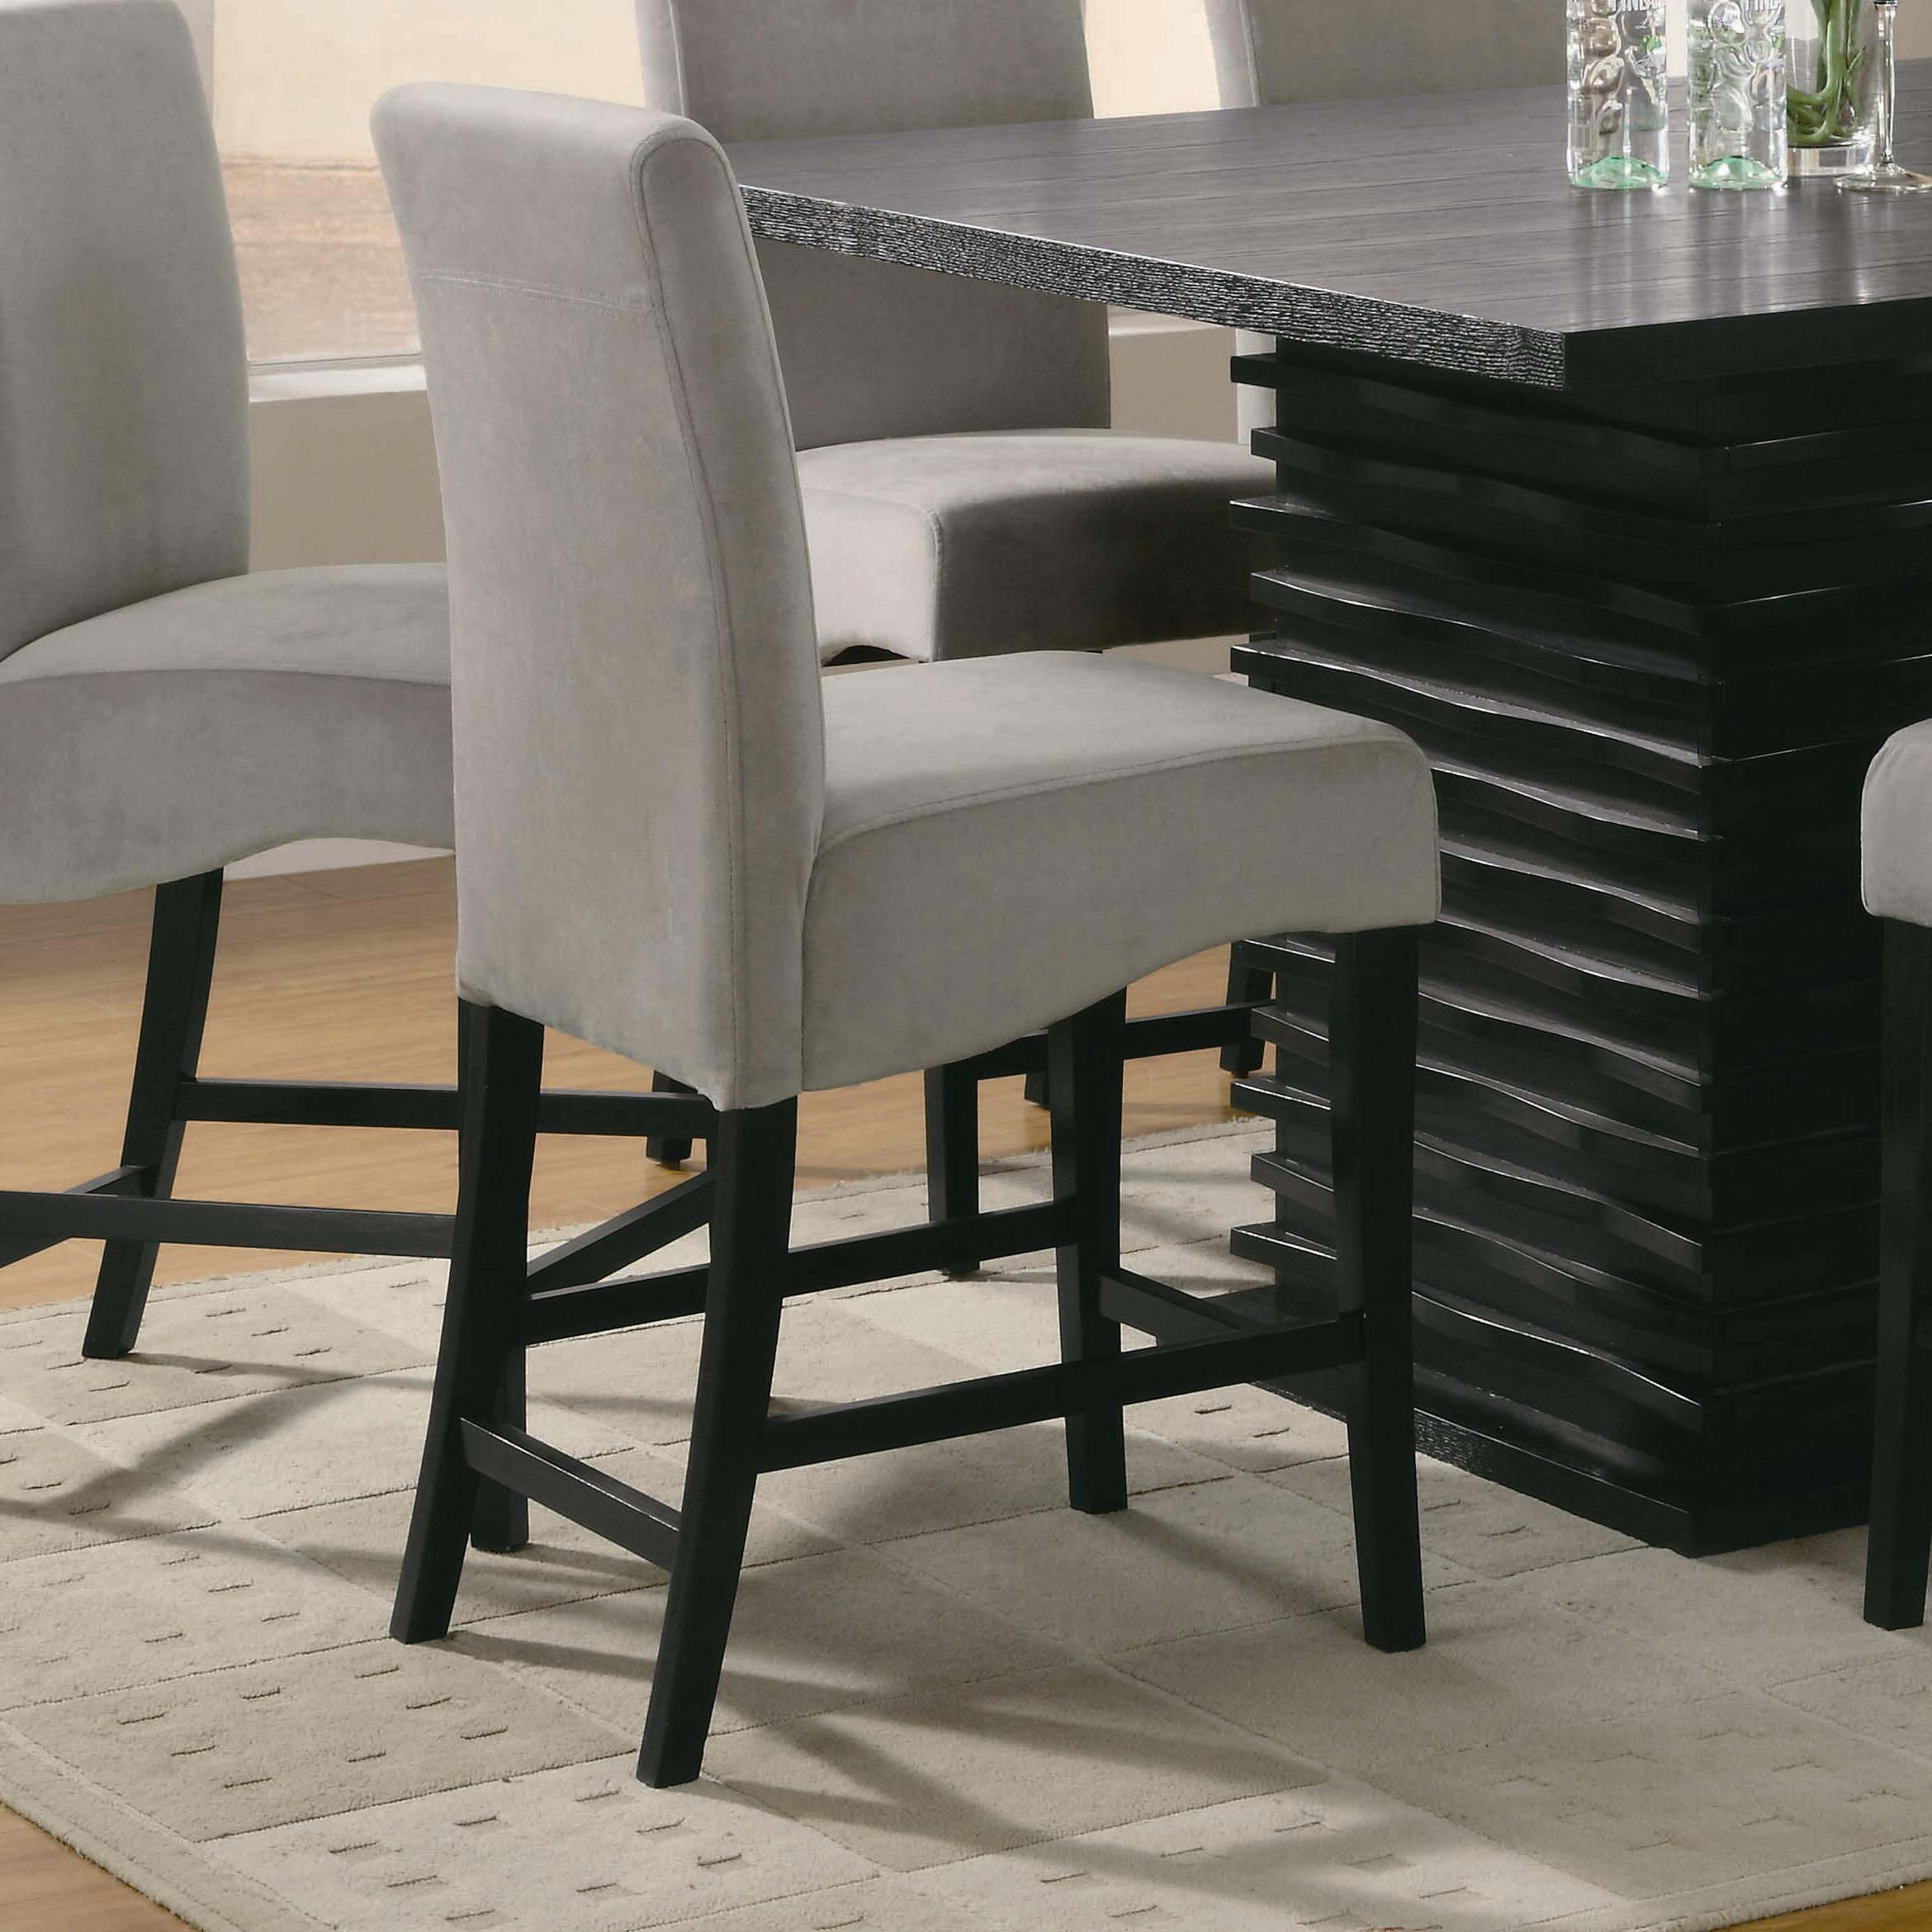 Coaster Stanton 102069gry 24 Inch Gray Bar Stool Del Sol Furniture Bar Stools